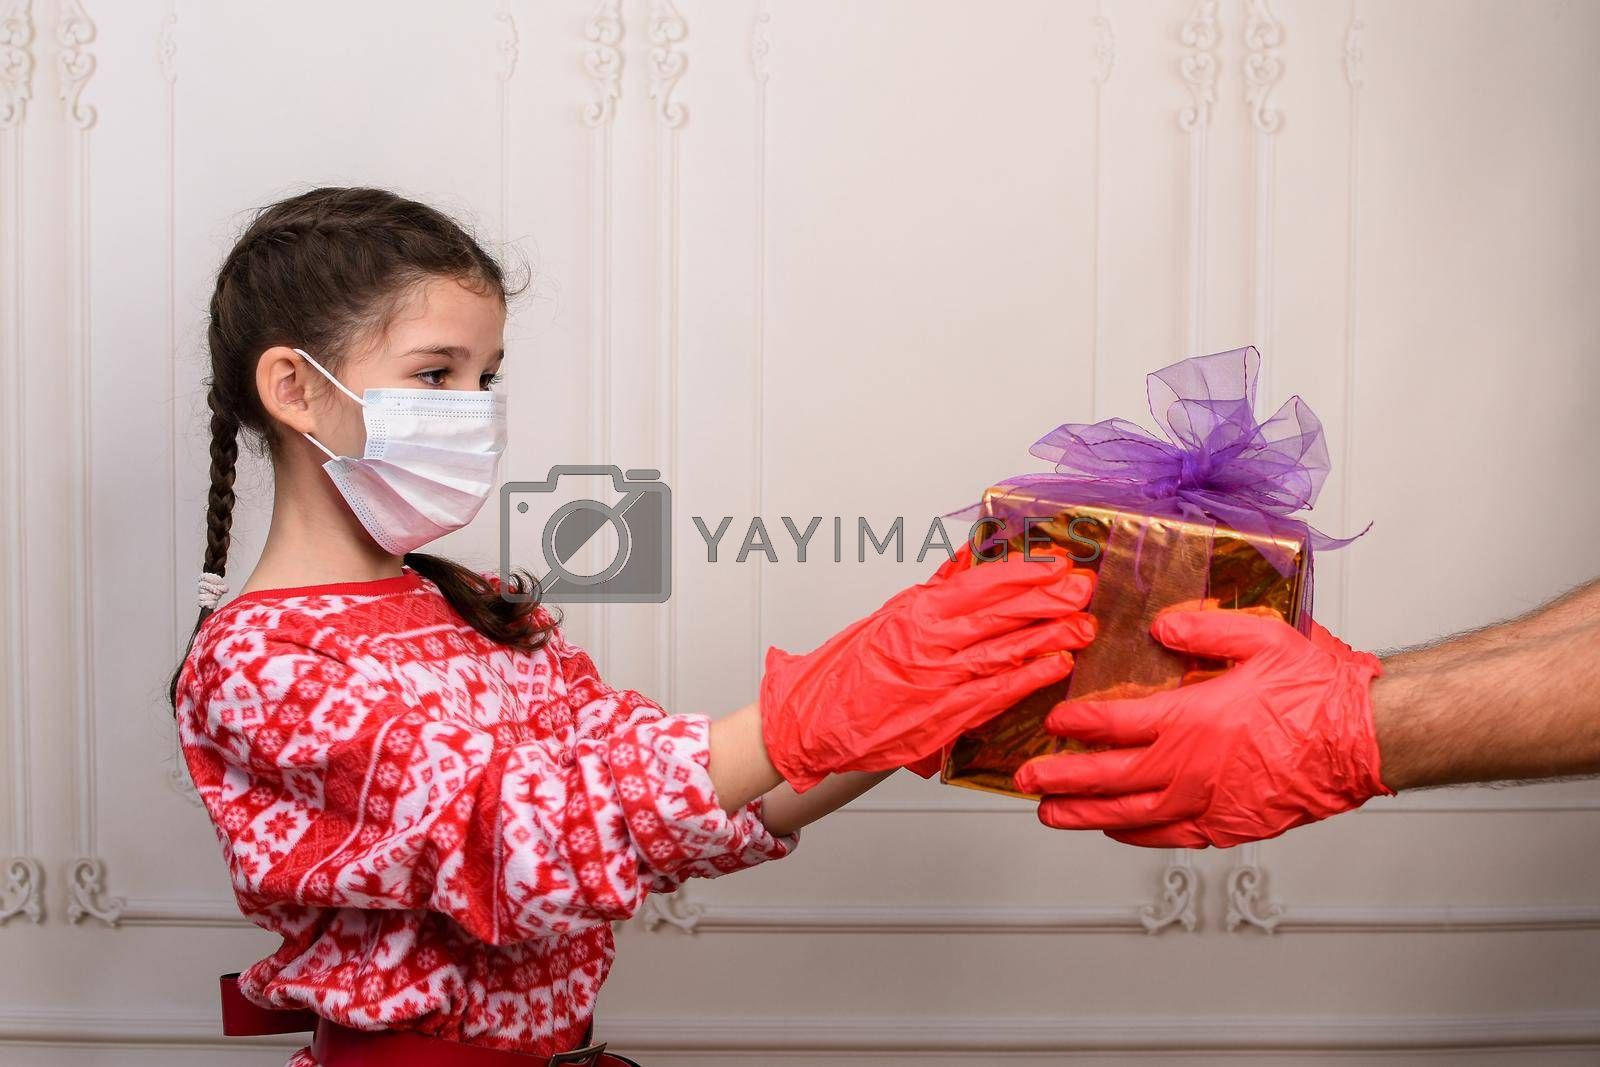 Childhood and people, the concept of Christmas during the epidemic. Girl in a mask and gloves receives a gift. on a light background. studio photo. High quality photo